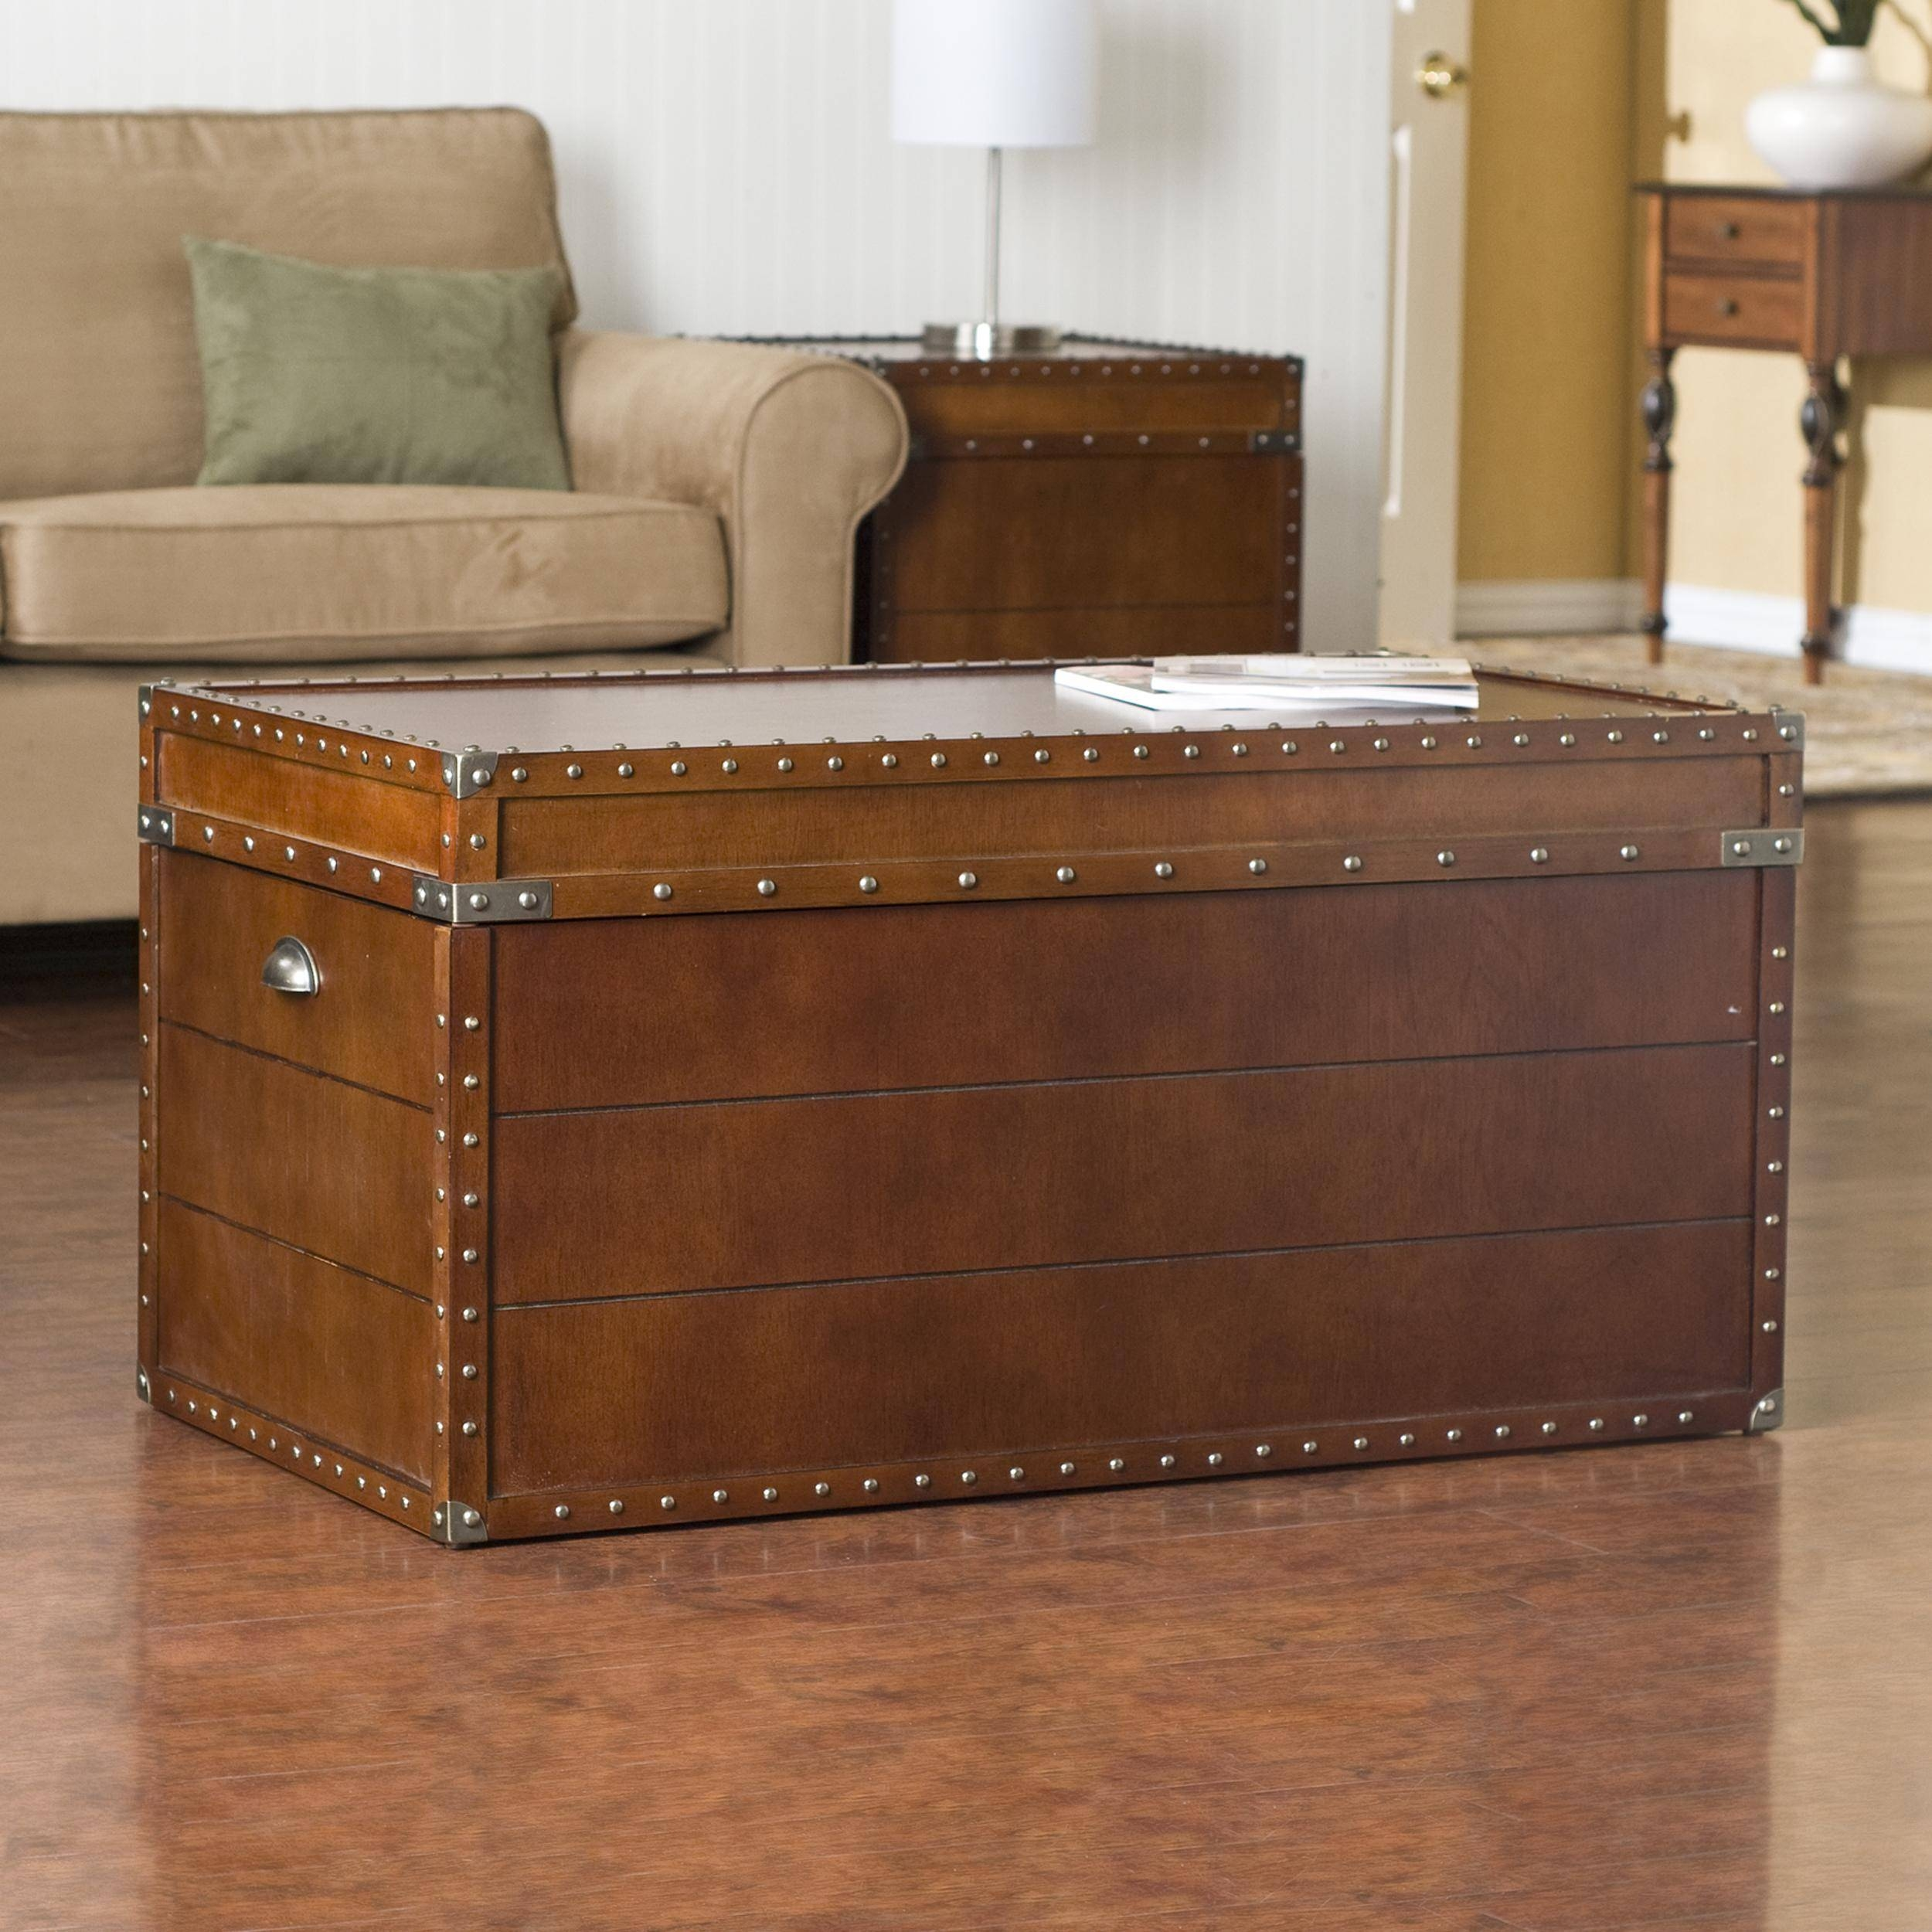 Coffee Tables : Trunk As Coffee Table Miracle Chest Trunk Storage in Old Trunks As Coffee Tables (Image 12 of 30)